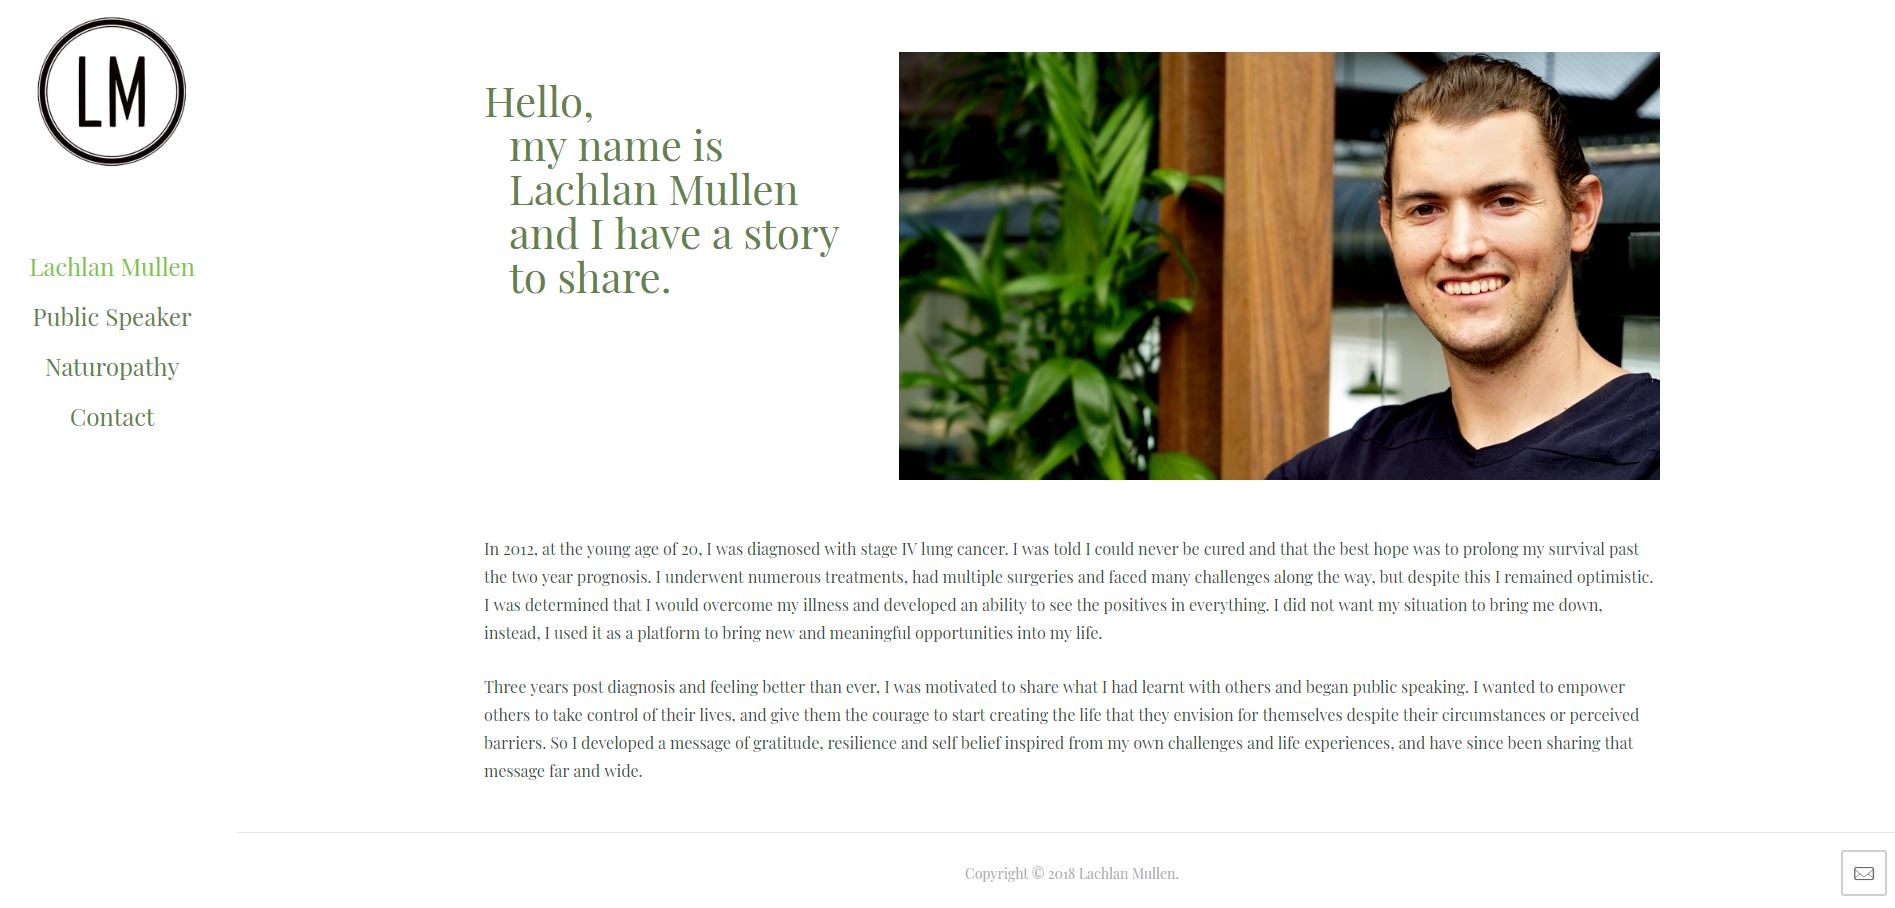 Lachlan Mullen home